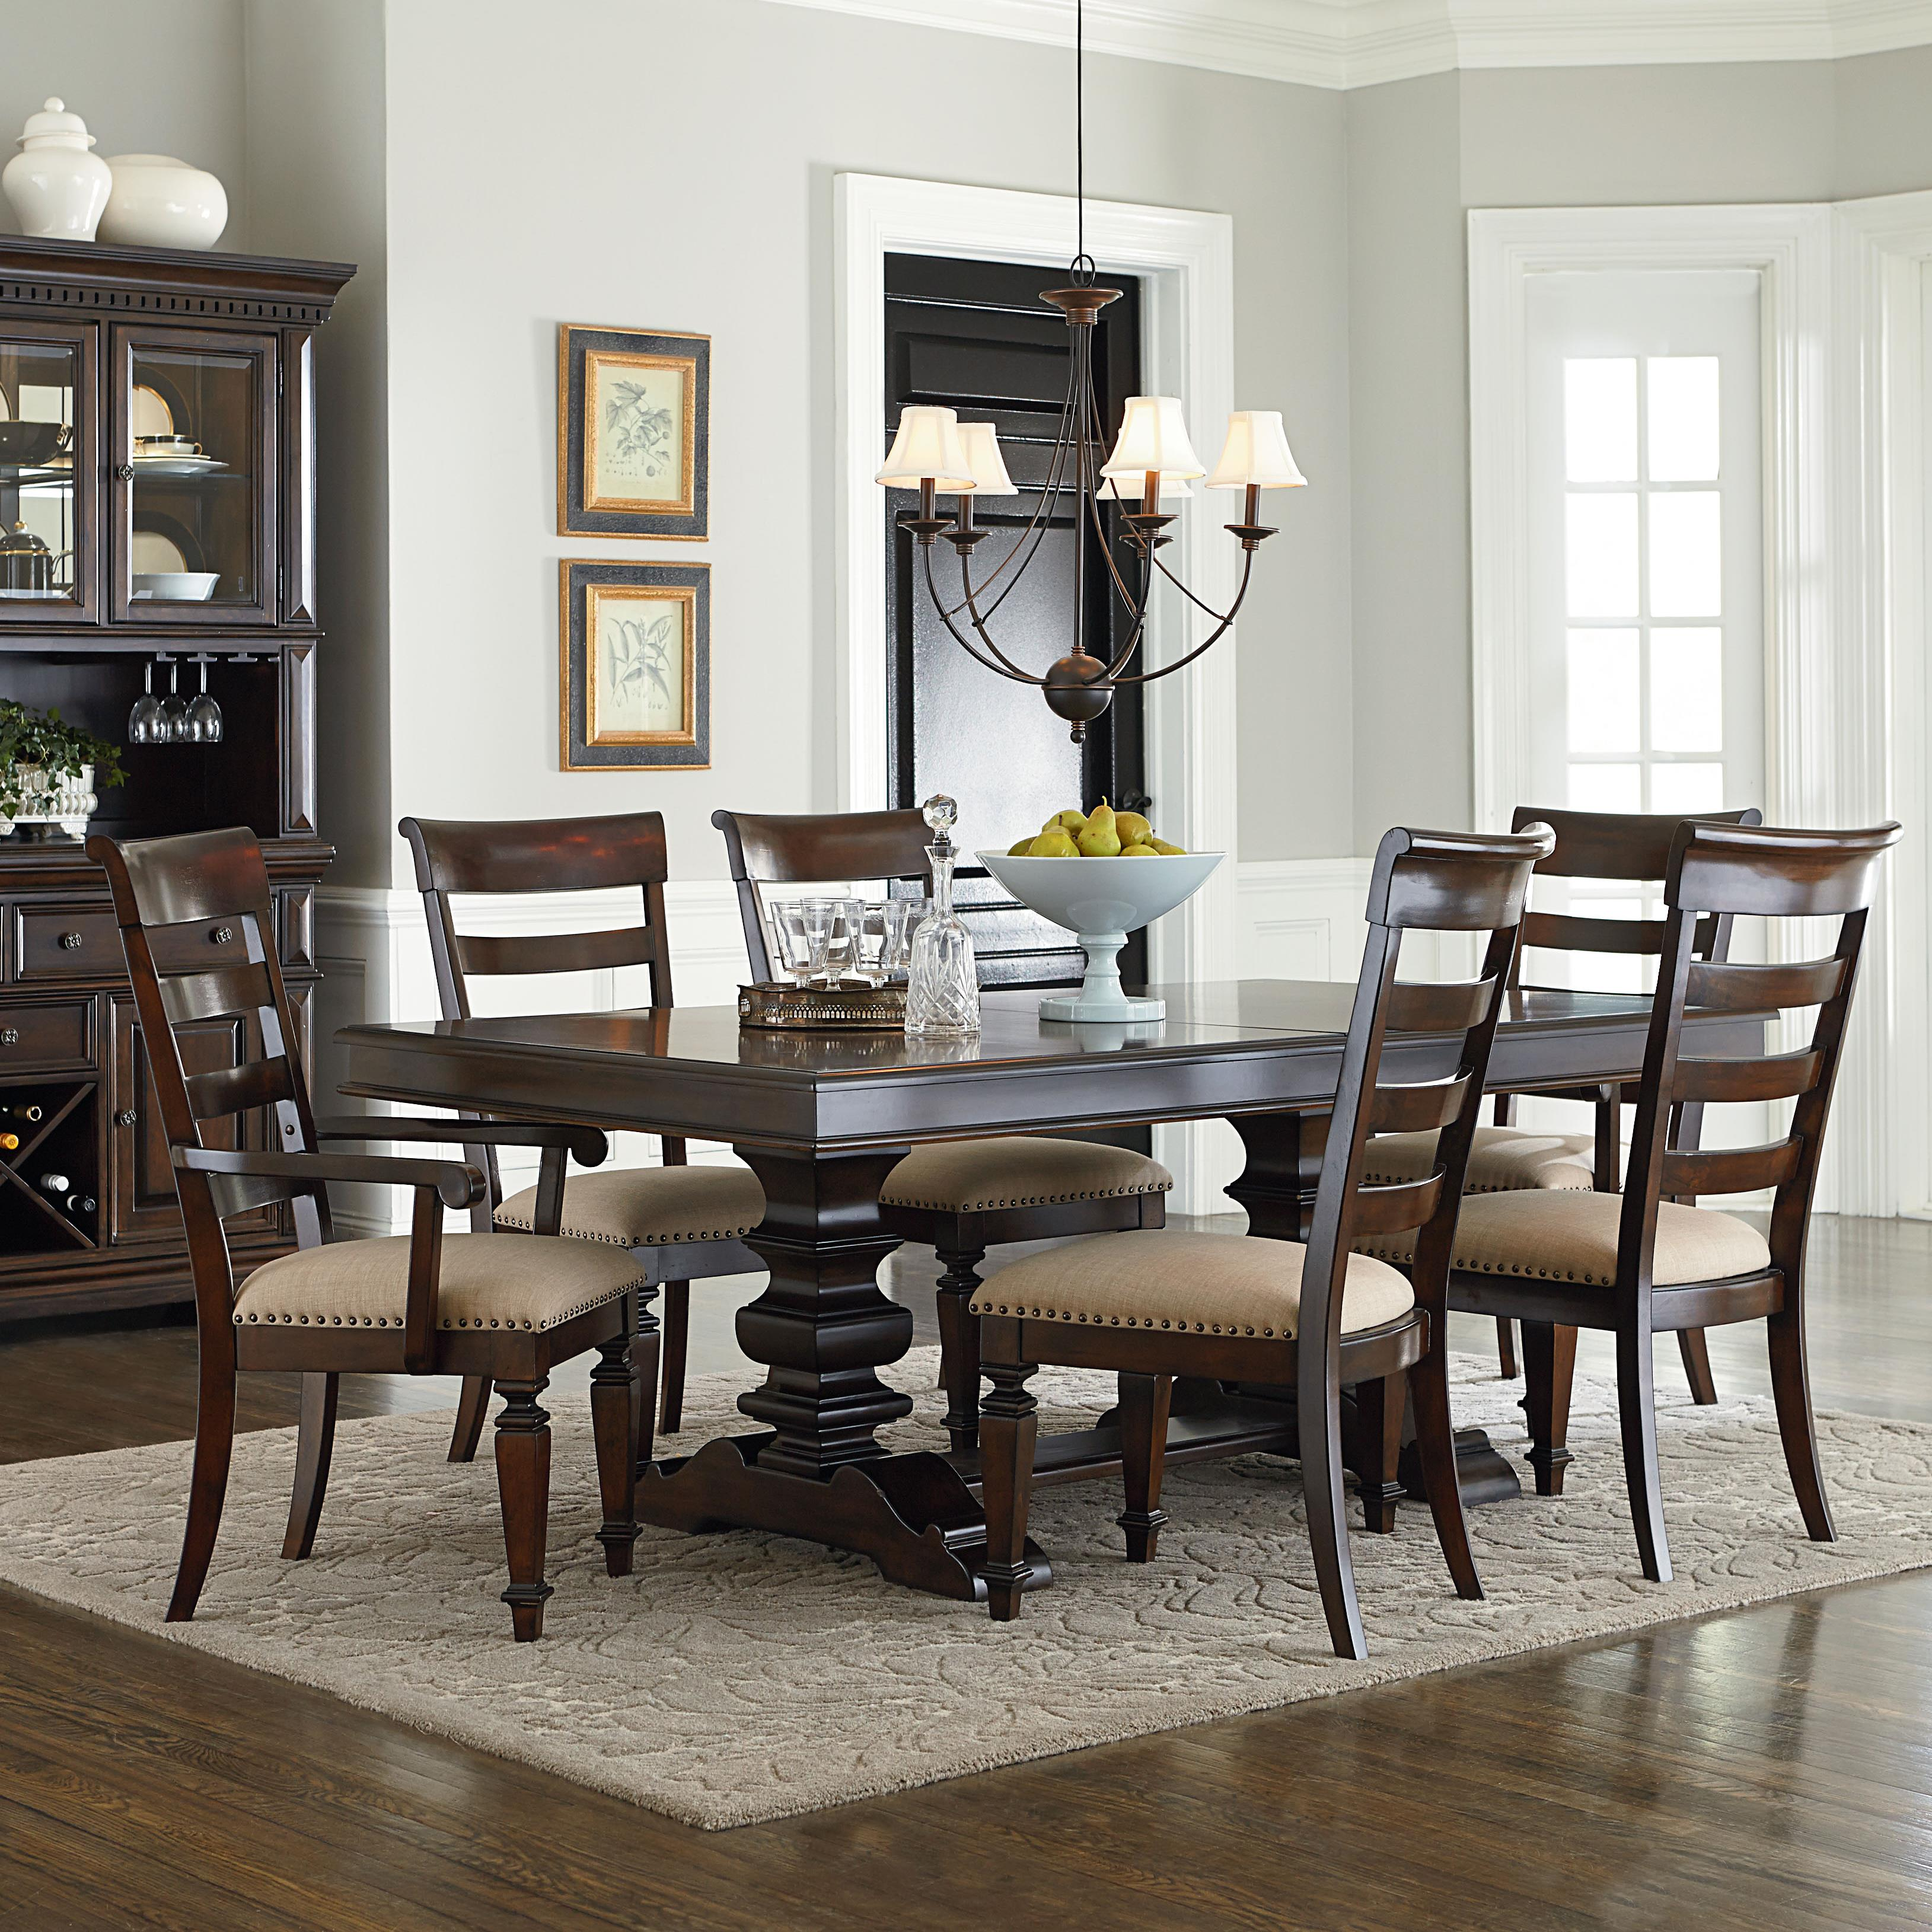 Chicago Traditional Formal Dining Room Furniture Stores: Standard Furniture Charleston Traditional Seven Piece